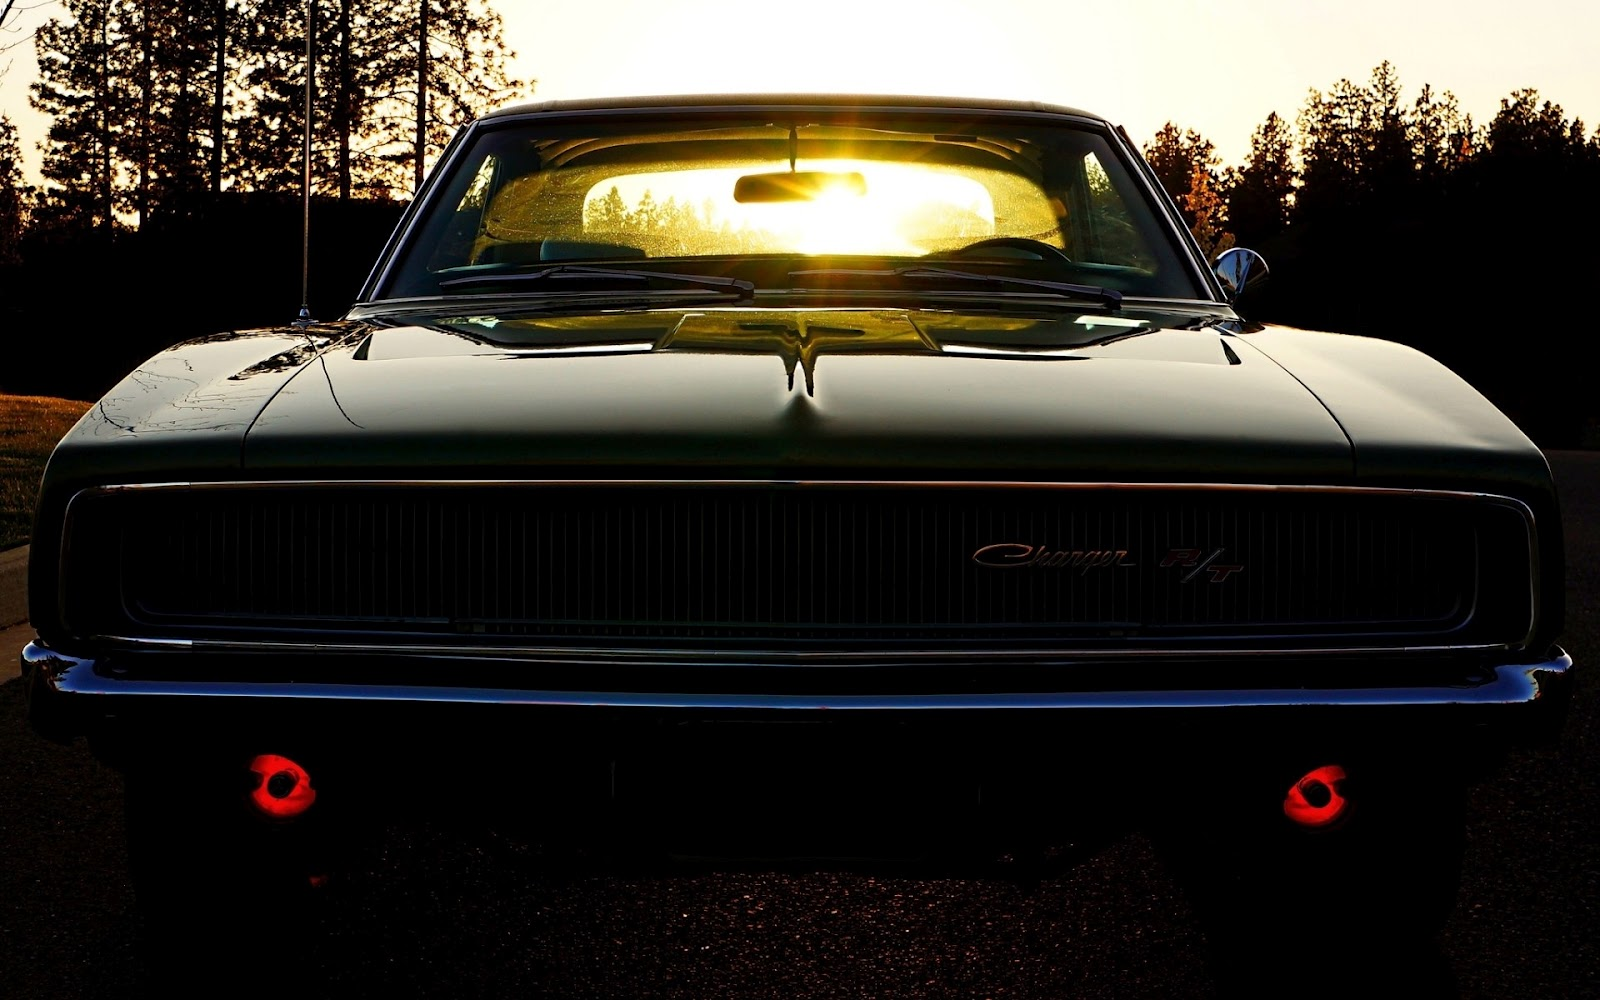 dodge challenger shining sunlights hd car wallpaper | hd wallpapers